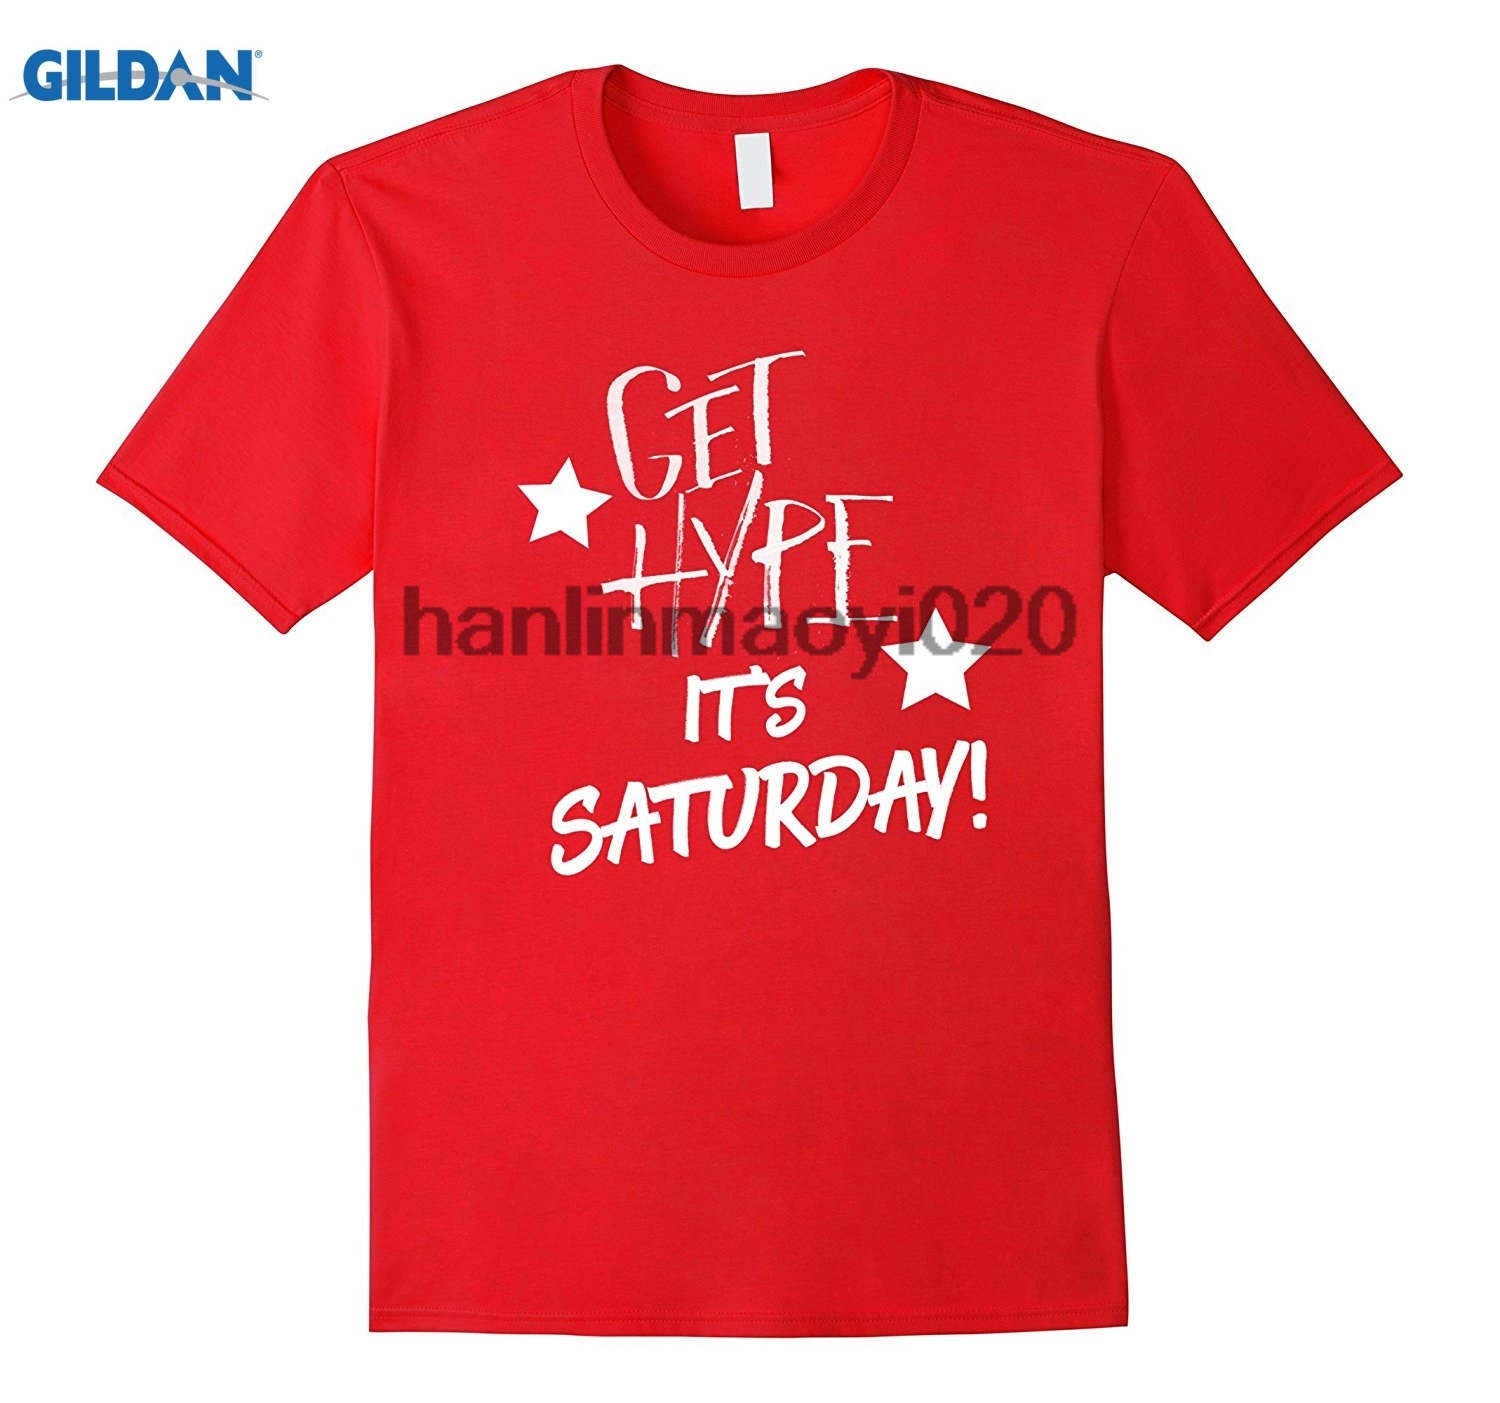 GILDAN GET ITS SATURDAY FUNNY TSHIRT